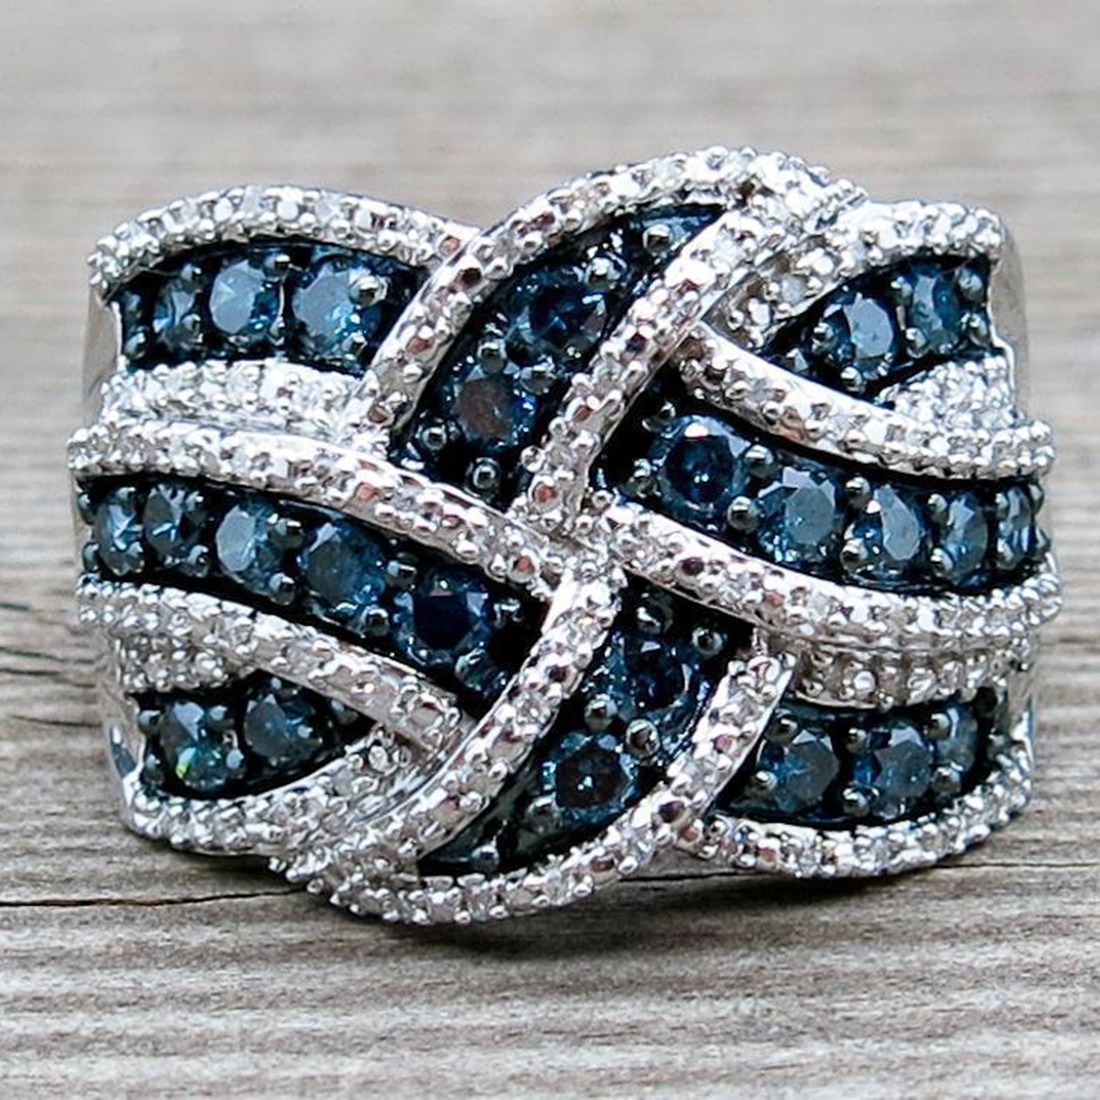 Engagement Rings On Sale Newcastle: Hot Sale Blue Zircon Stone Band 925 Sterling Silver Big